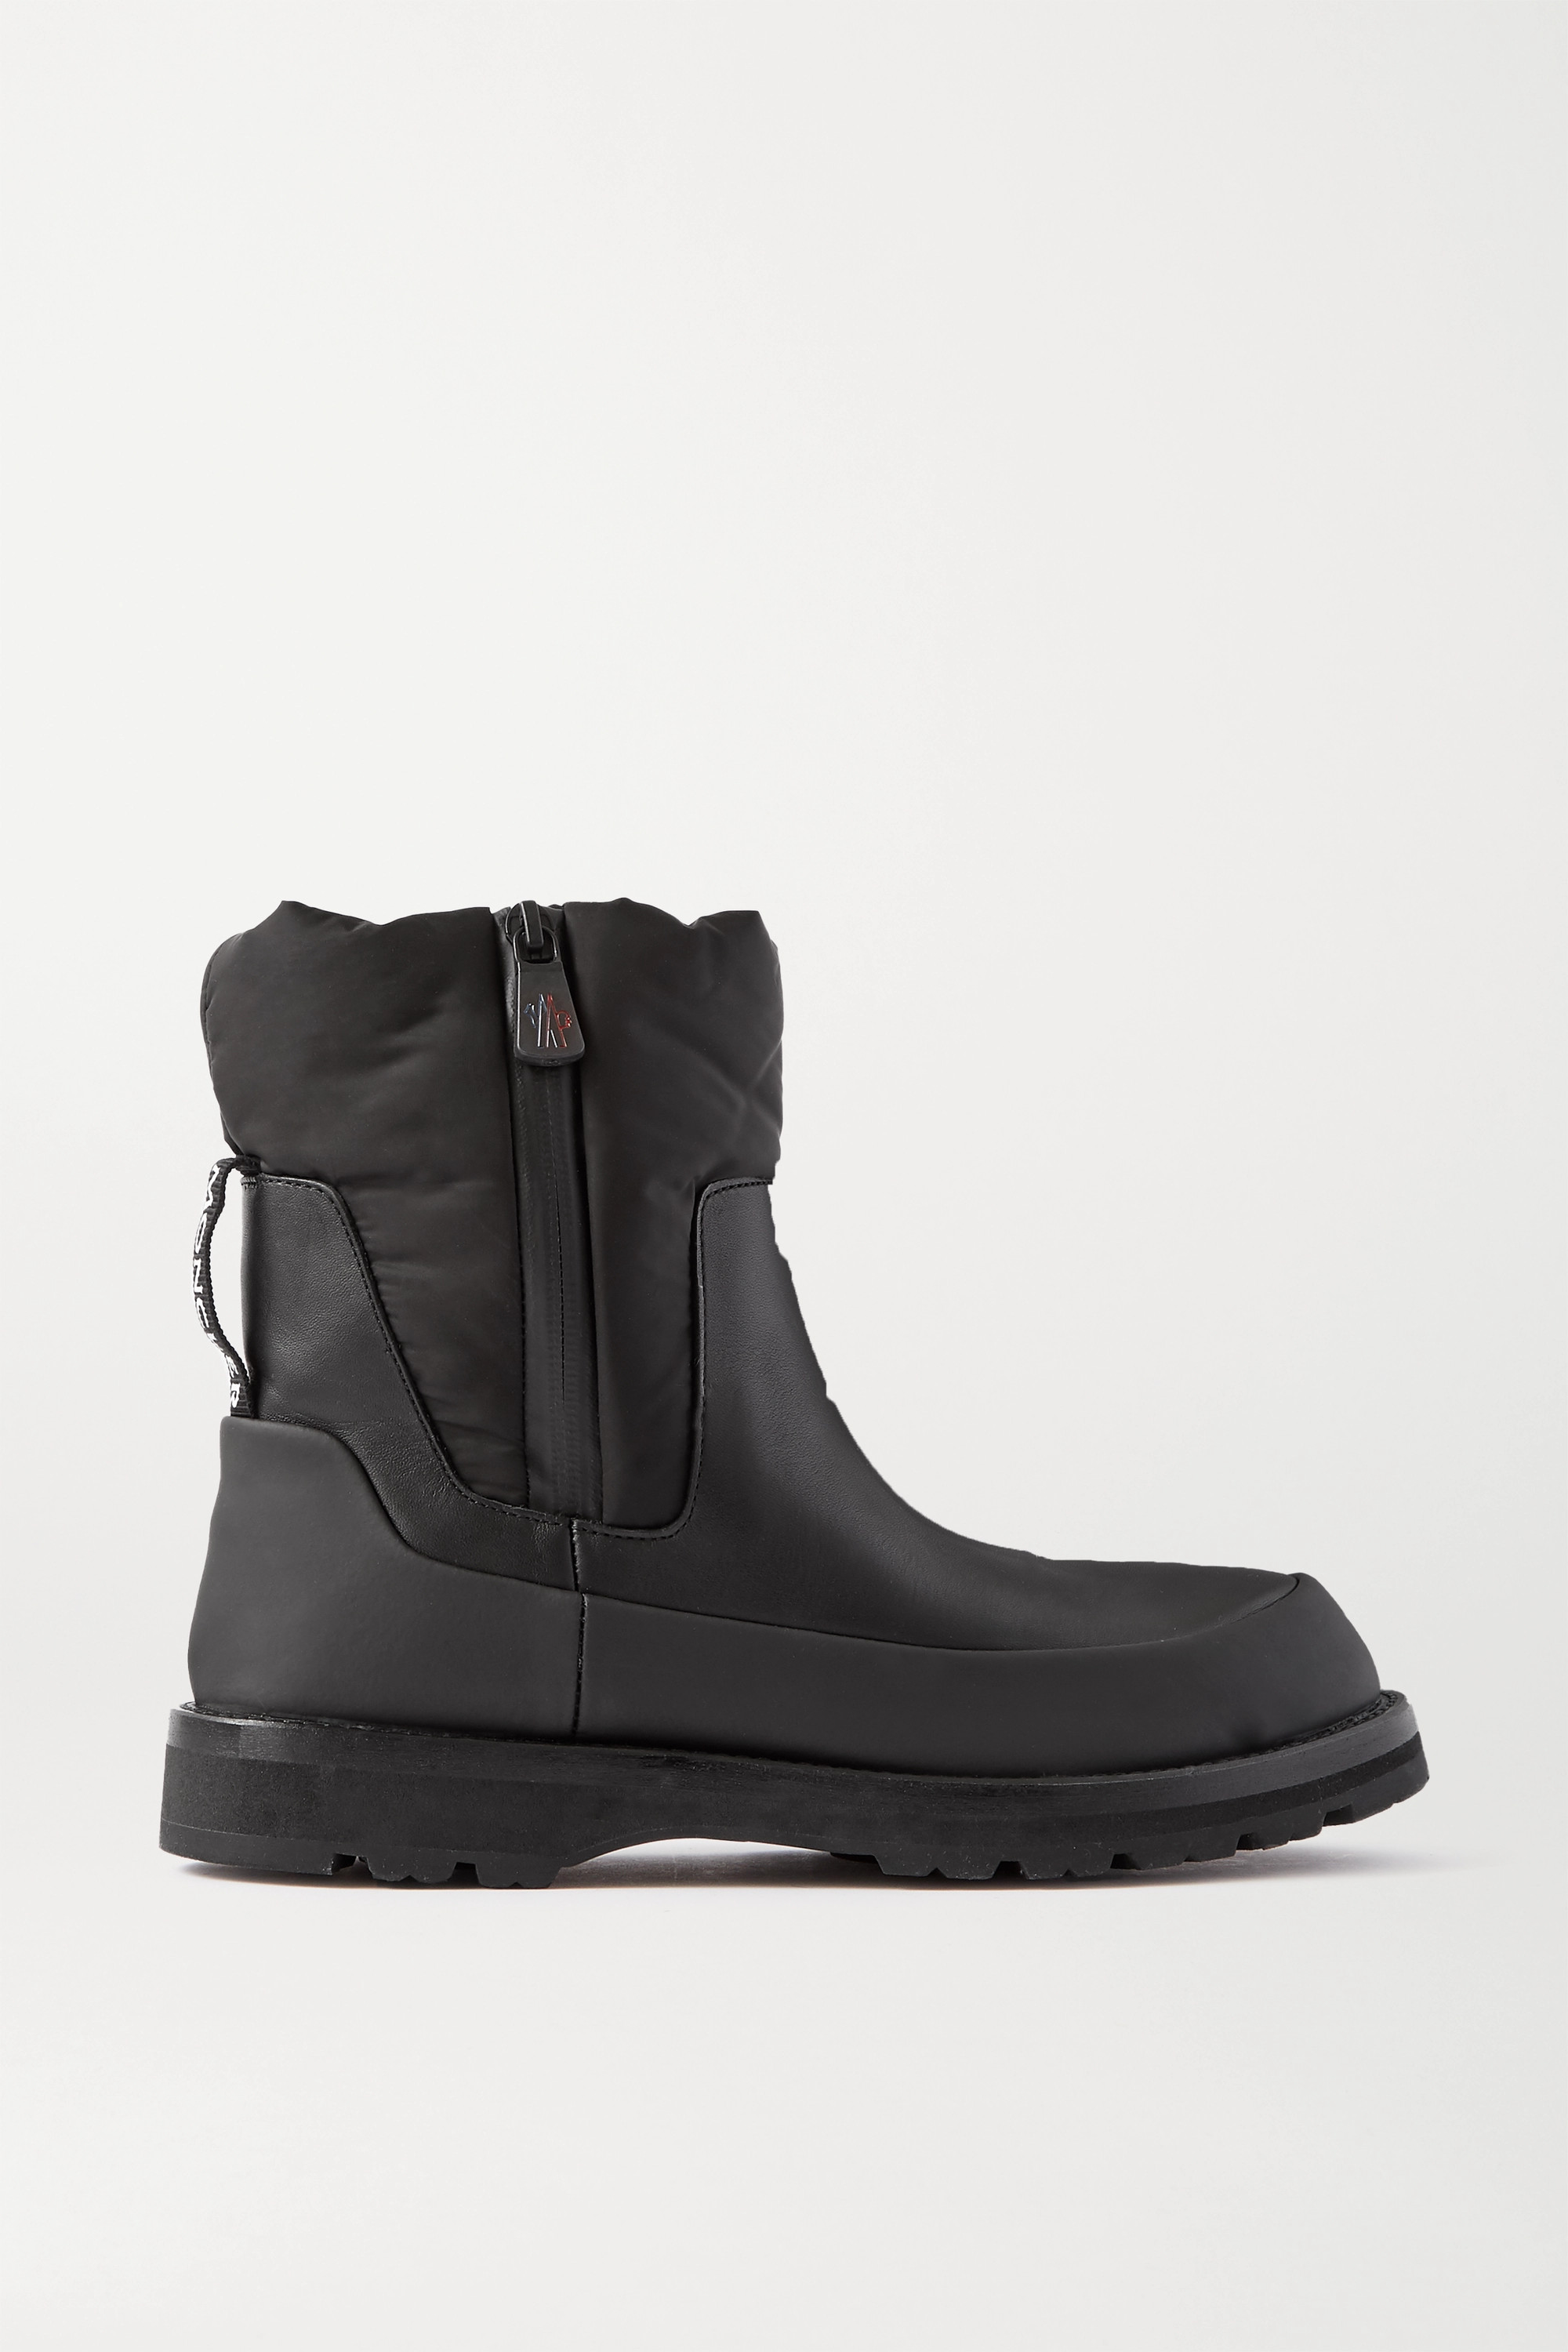 Moncler Rain Don't Care paneled leather and shell ankle boots